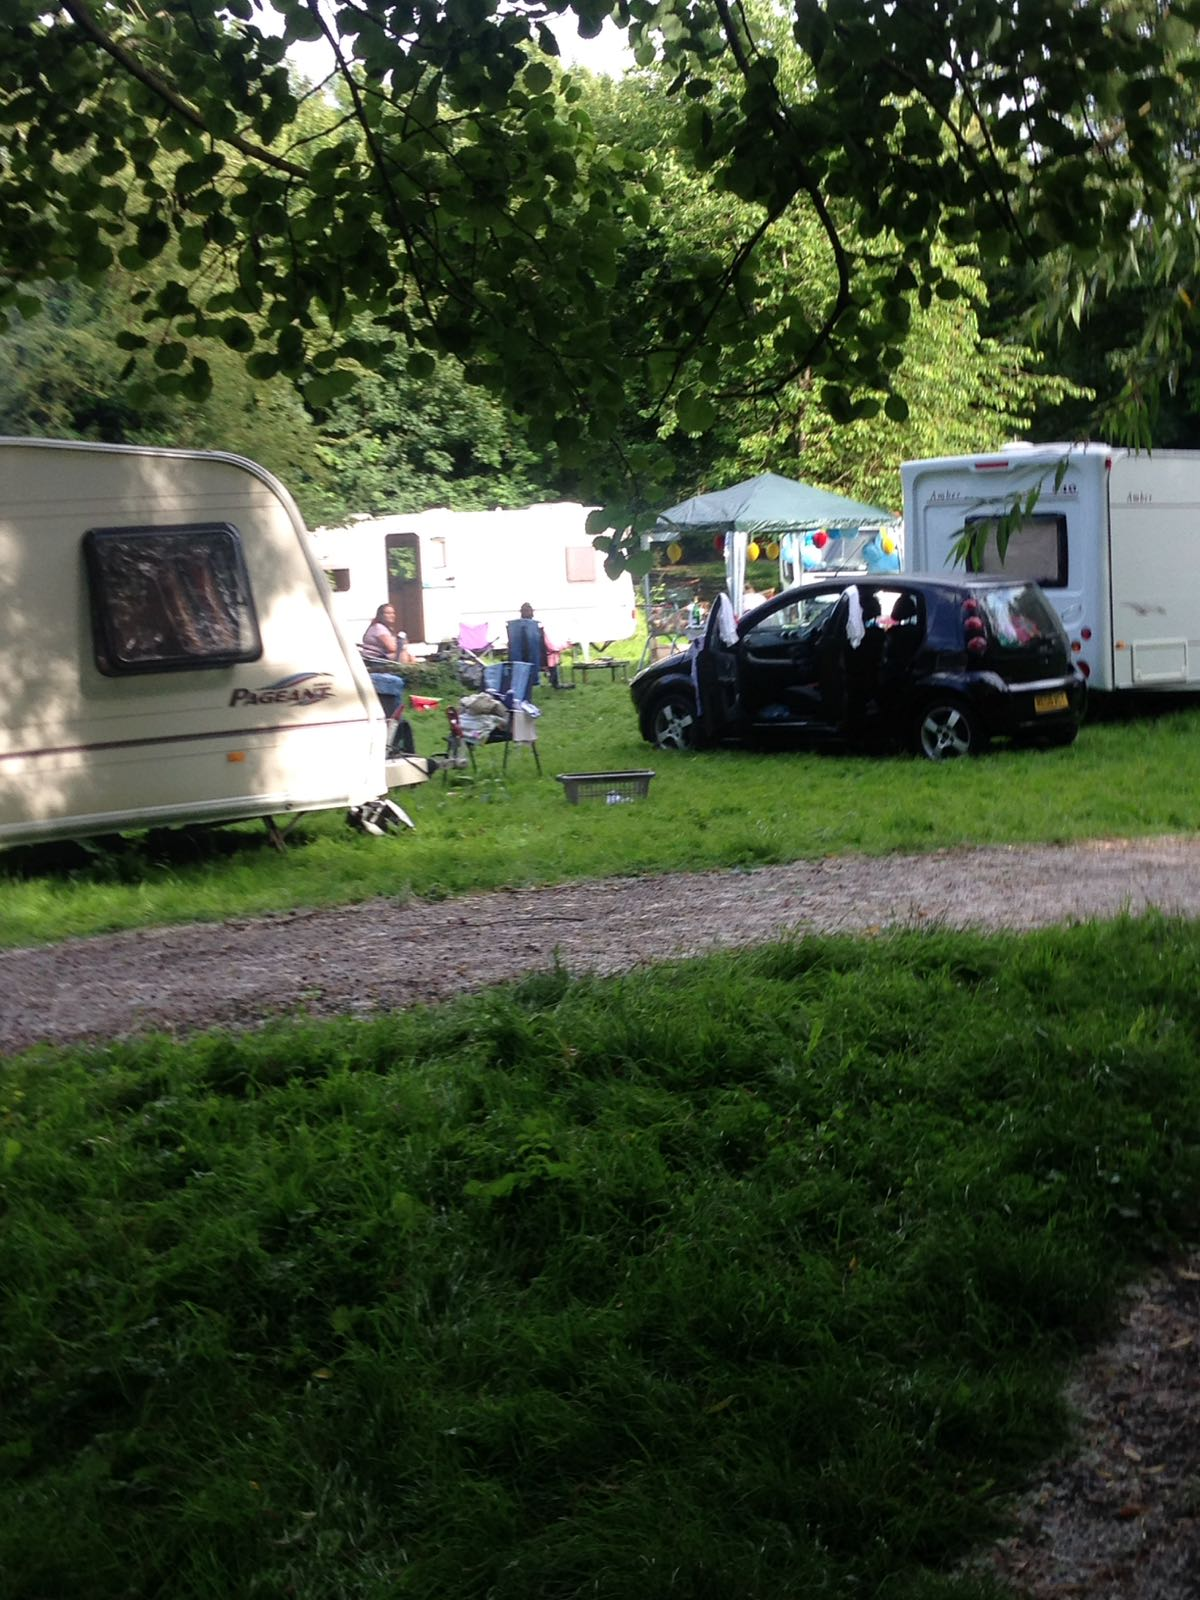 Wantage travellers: residents get fed up with nature reserve invasion